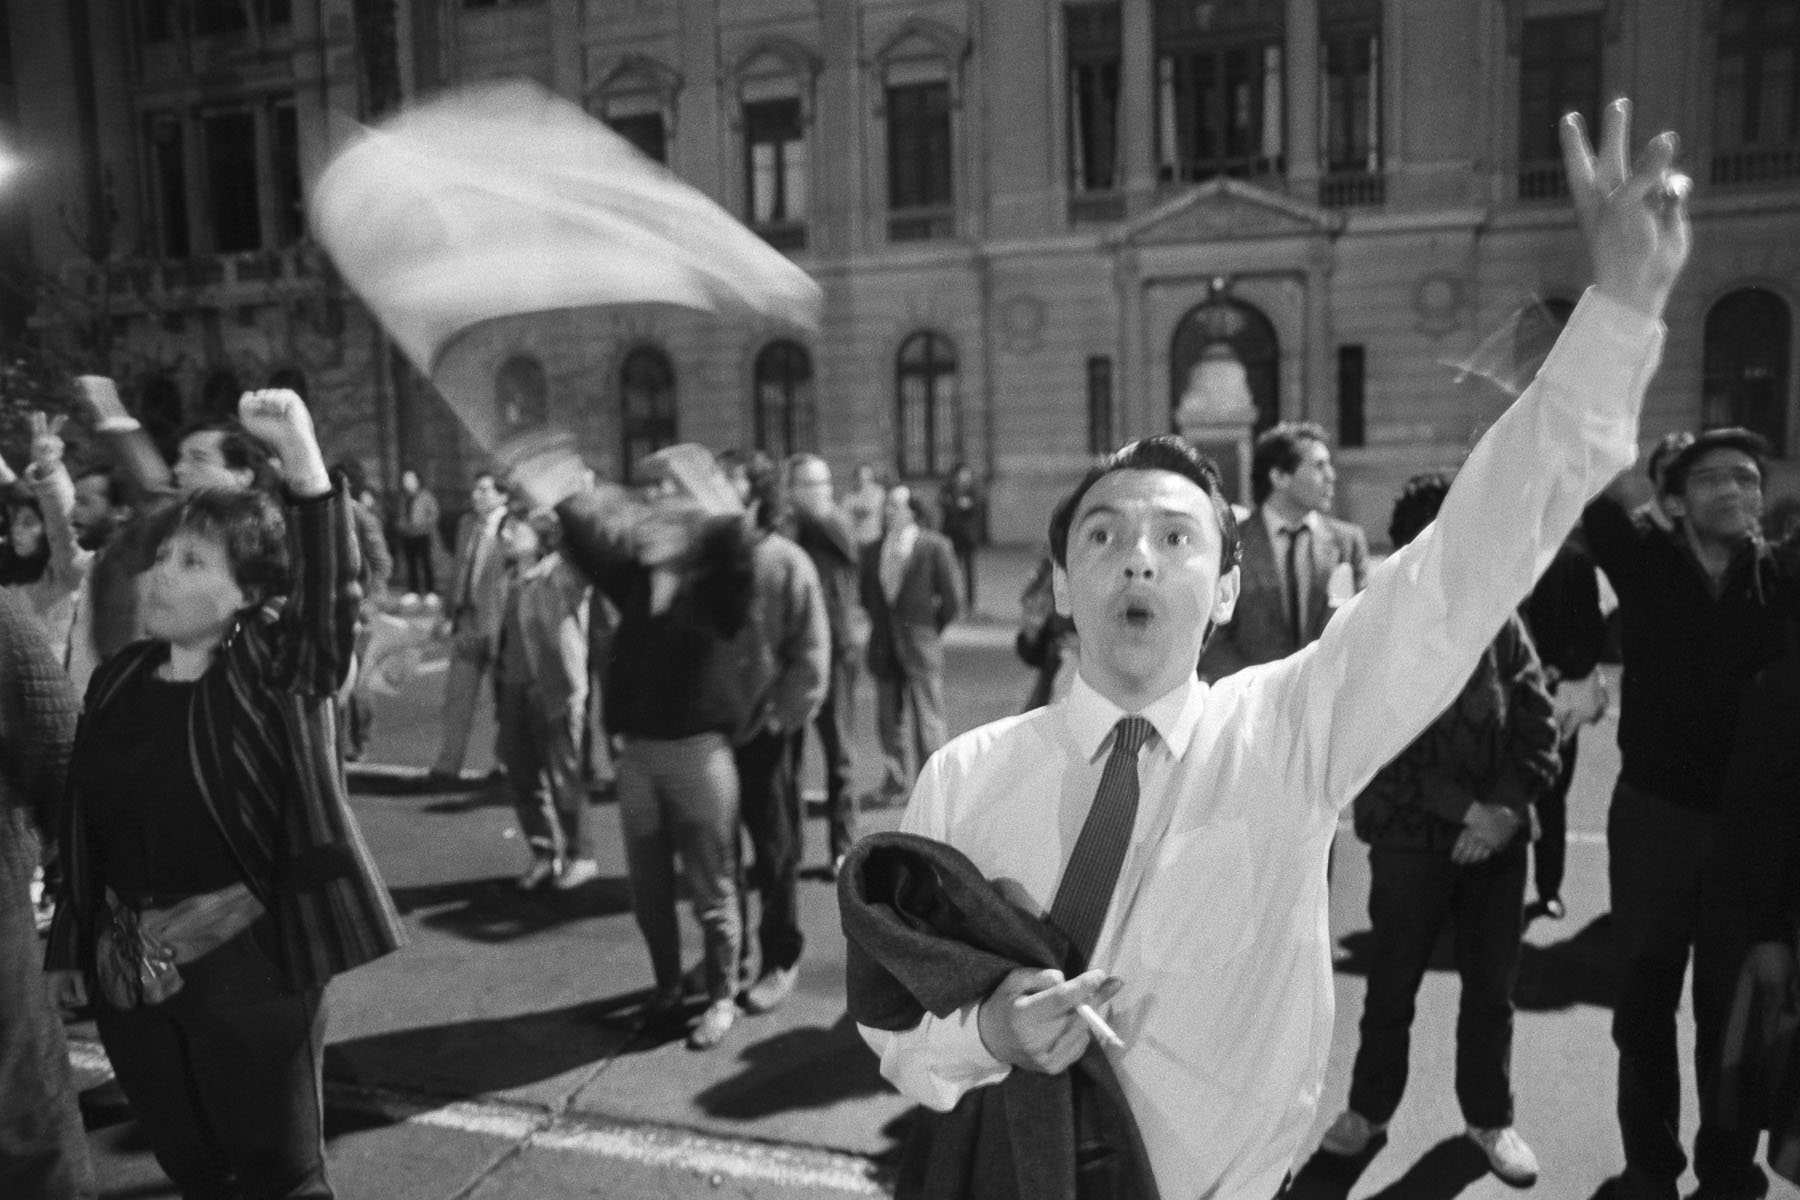 A man celebrates plebiscite NO vote victory defeating Augusto Pinochet on October 5, 1988